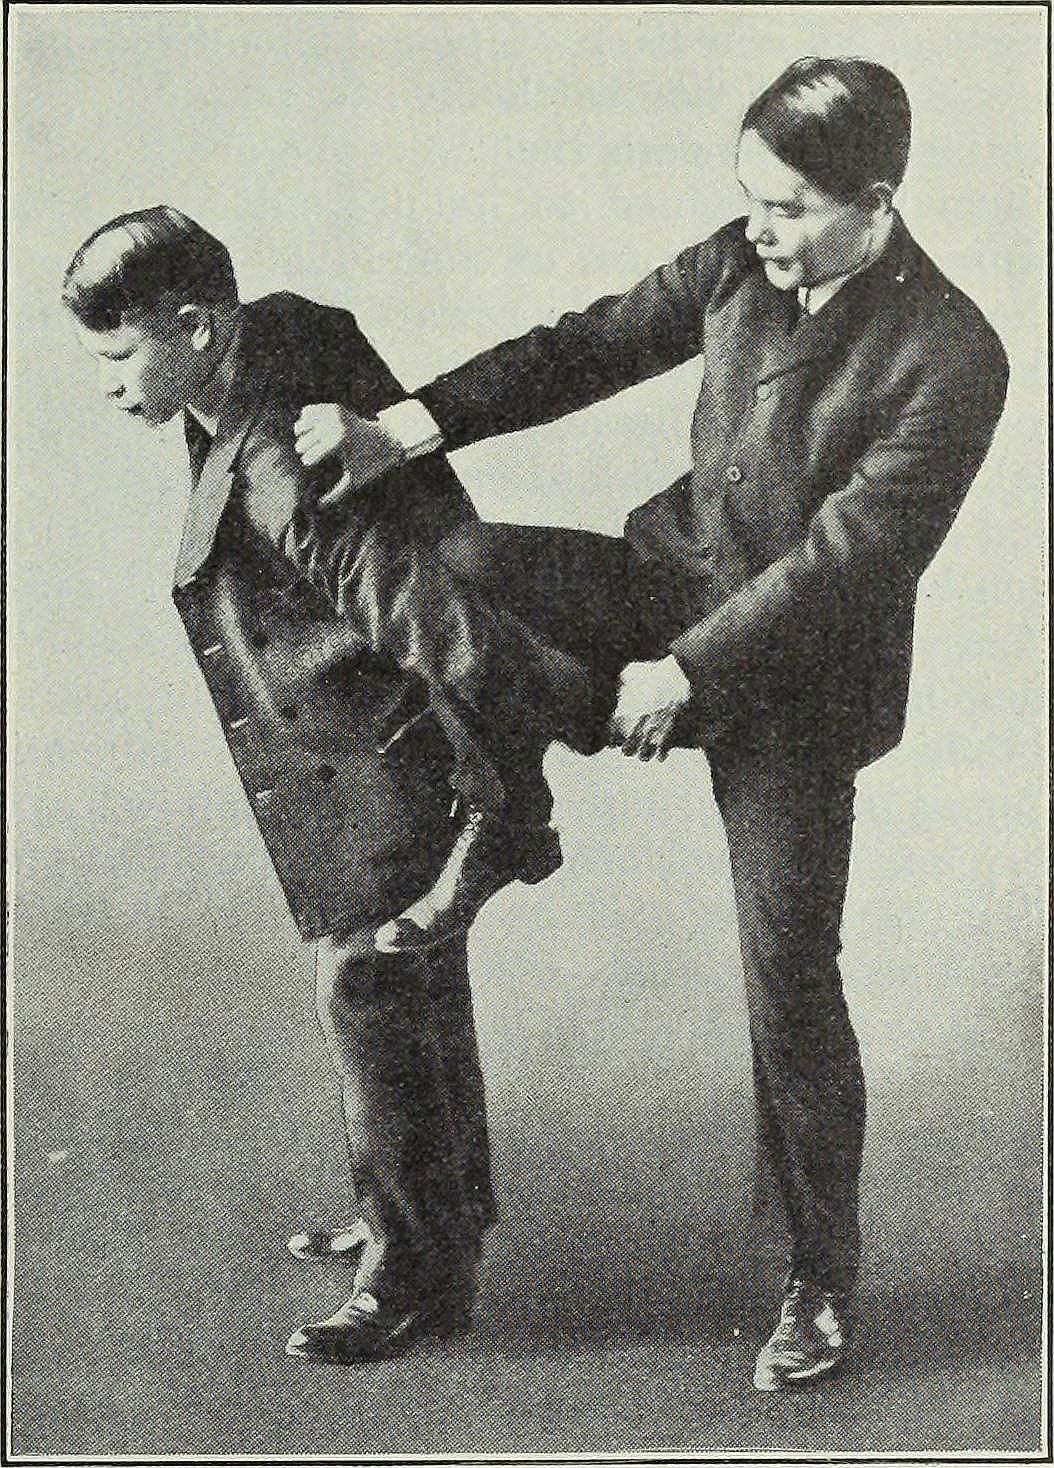 sports-martial arts-jiu-jitsu-interet archive----Image from page 218 of Review of reviews and world's work (1890) 14579875889